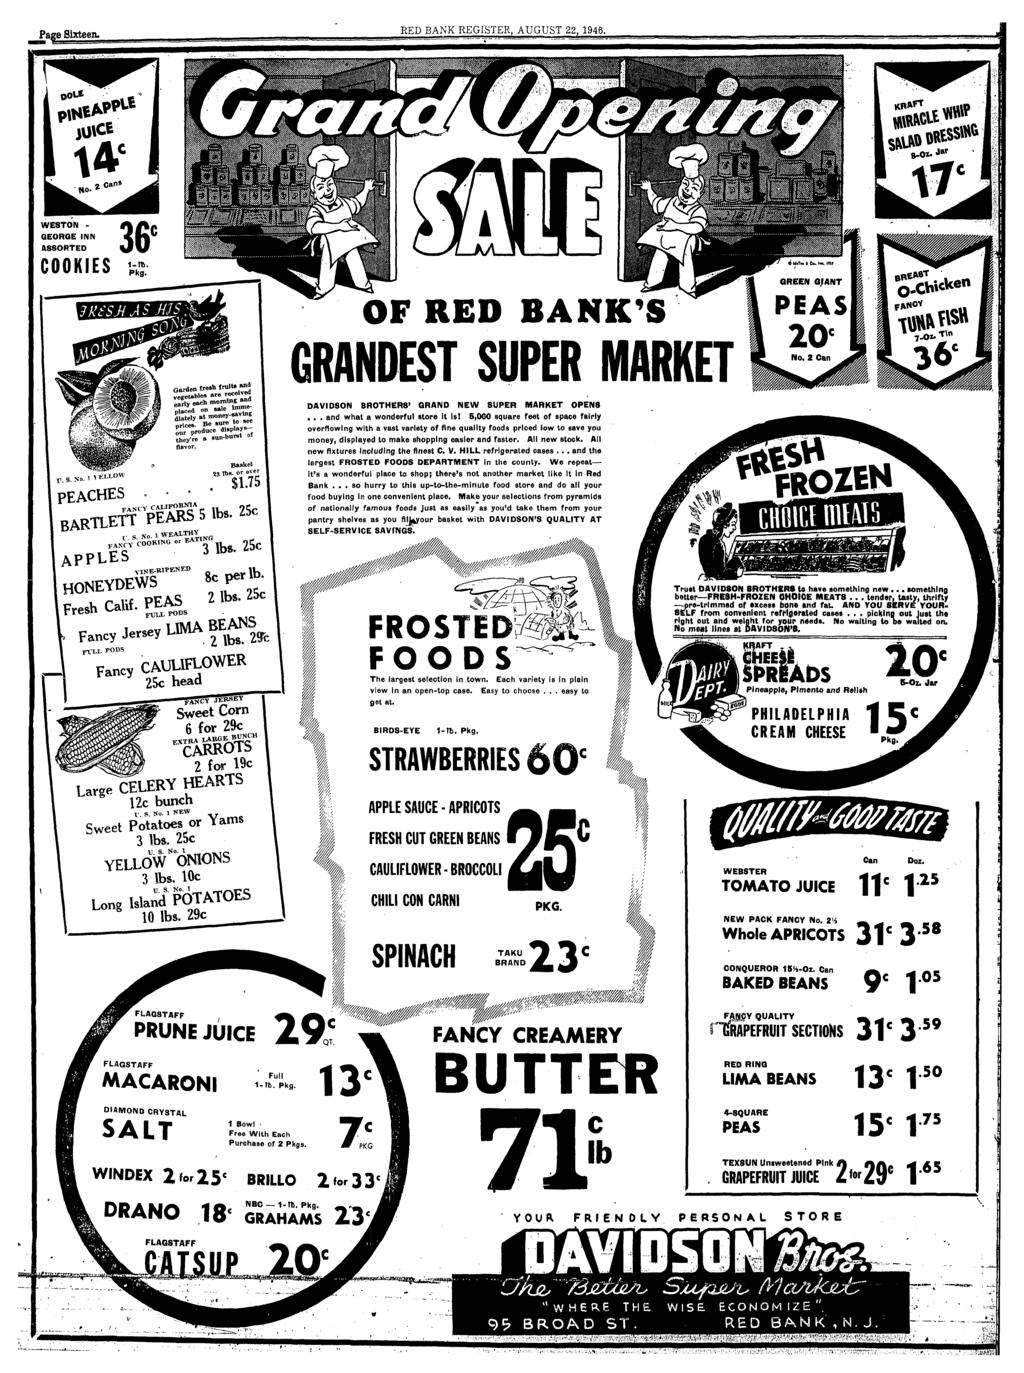 volume lxvix no 9 red bank n j thursday august 22 1946 Skills for a Teller Position red bank n j thursday august 22 1946 section one pages 1 to li i davidson brothers super market opened pdf